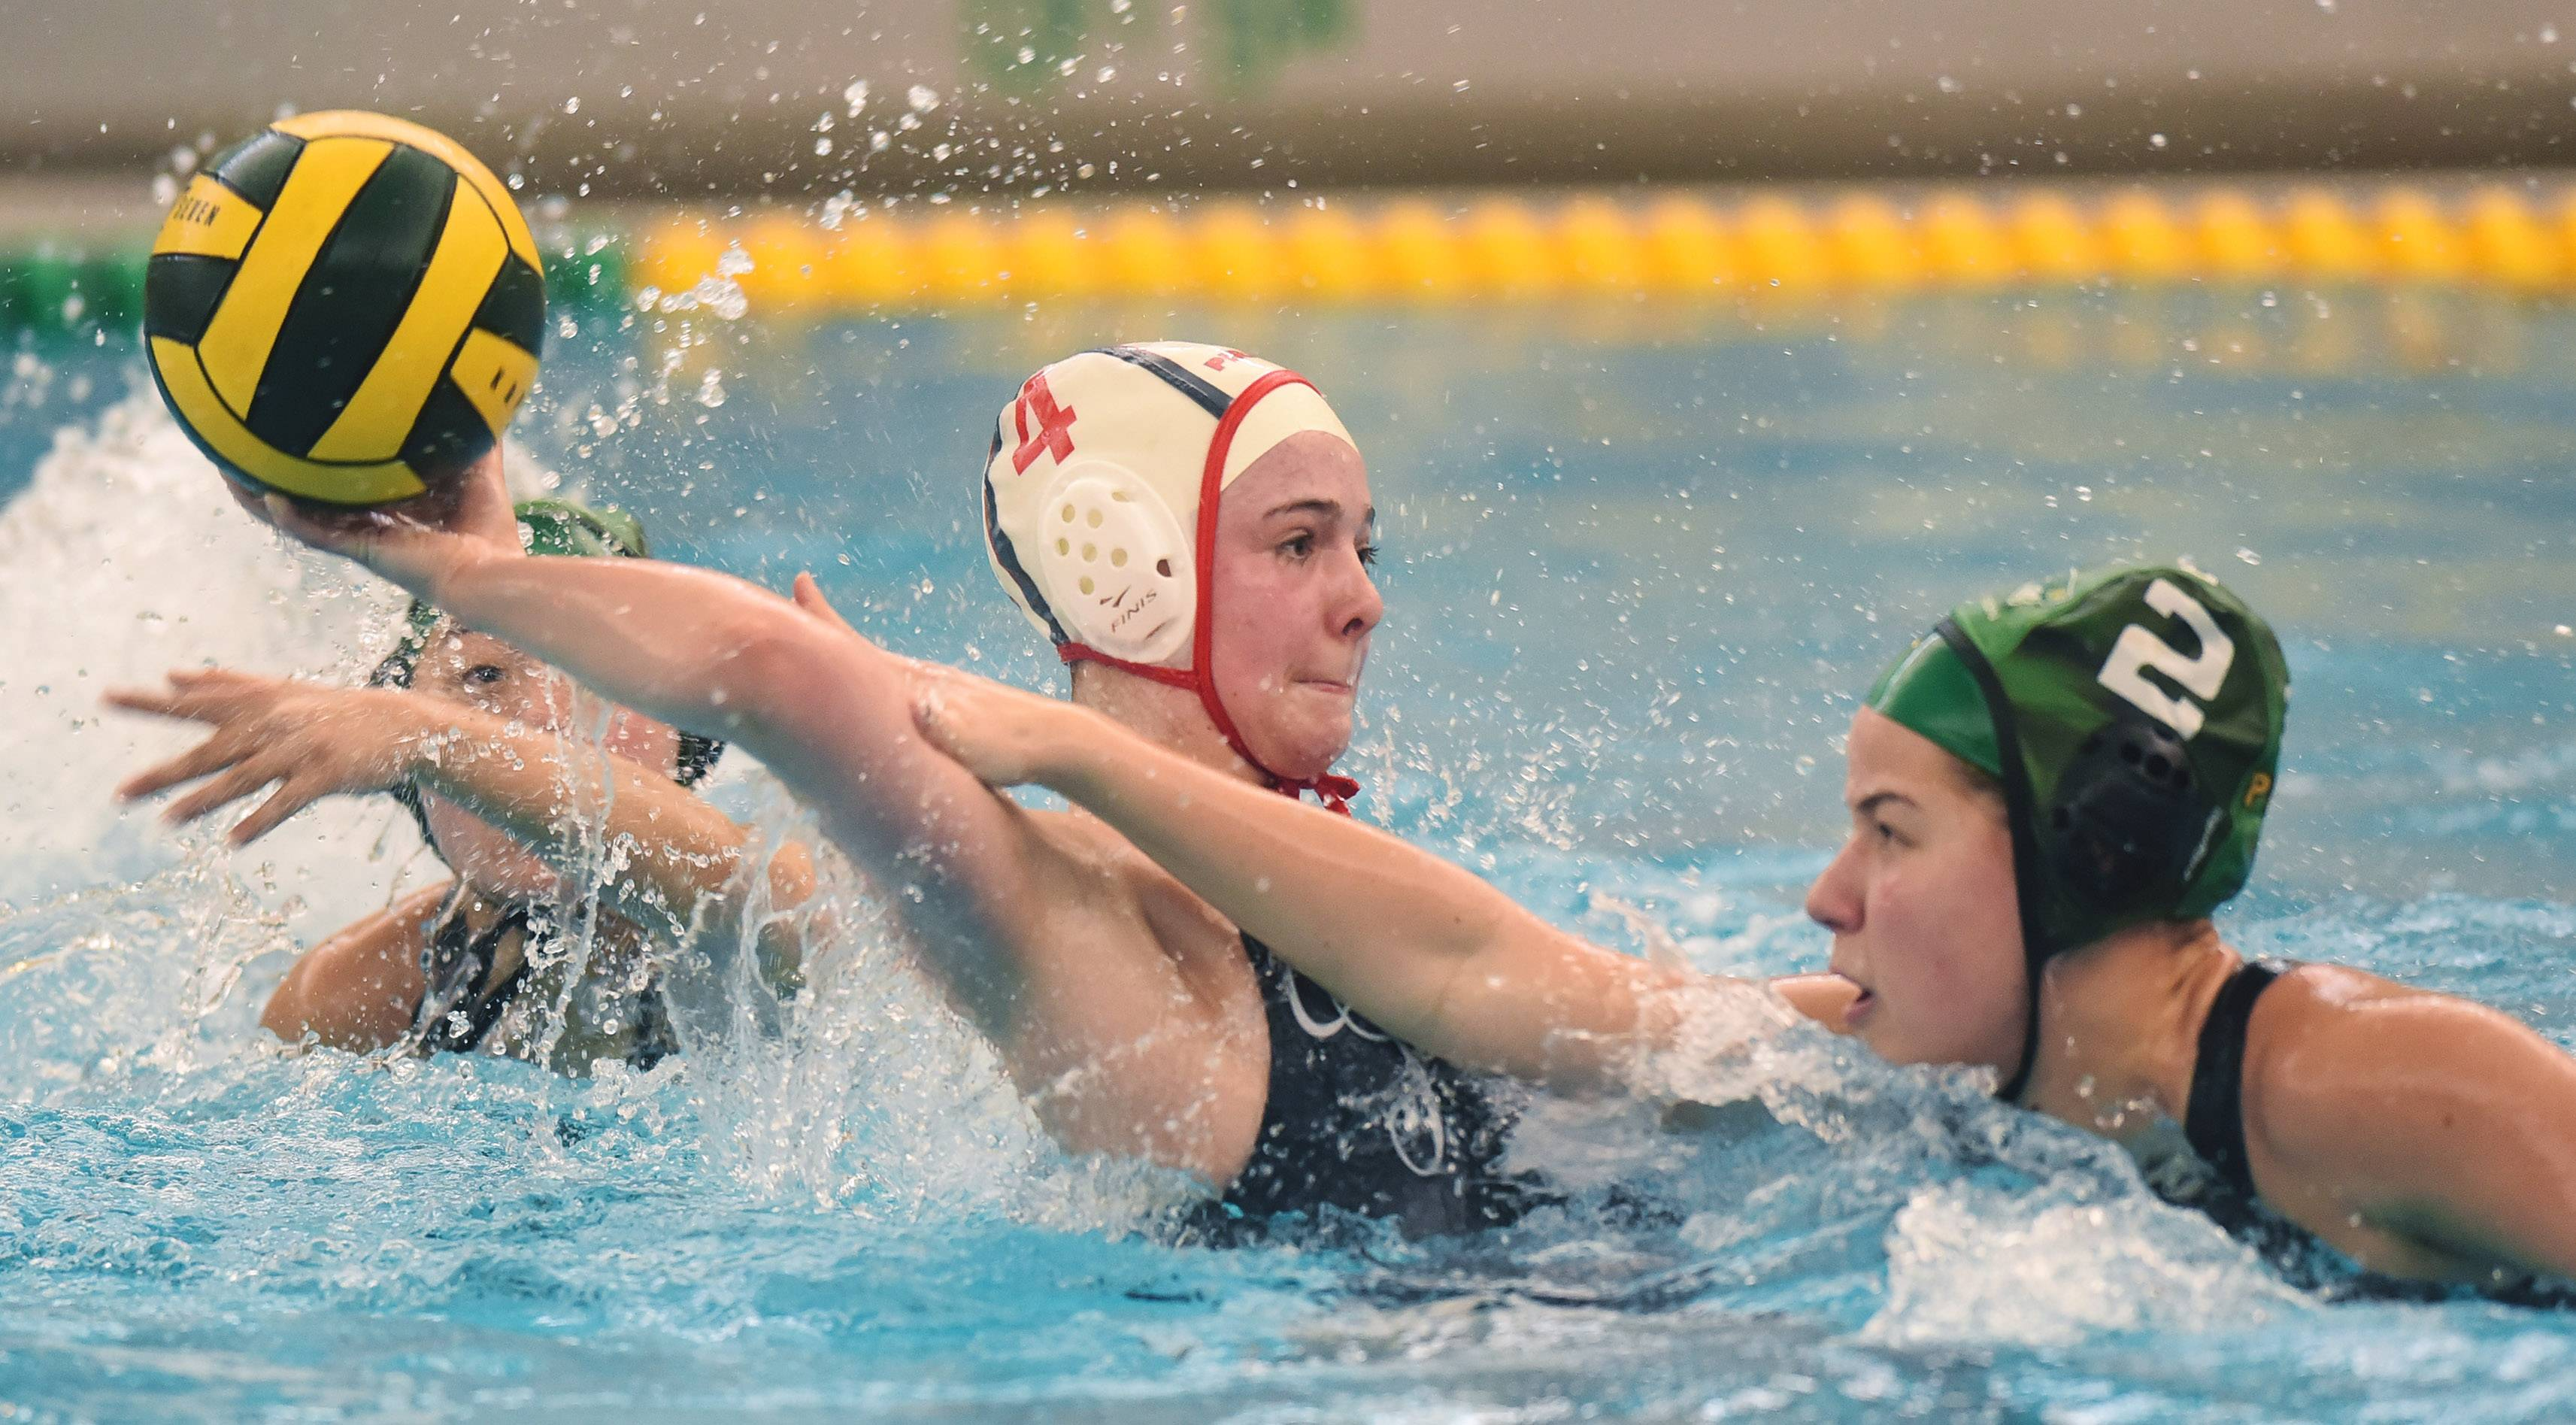 Stevenson's Tanya Shklier, right, defends a pass by Palatine's Mathilde Mogensen during Saturday's girls water polo quad at Stevenson High School in Lincolnshire.